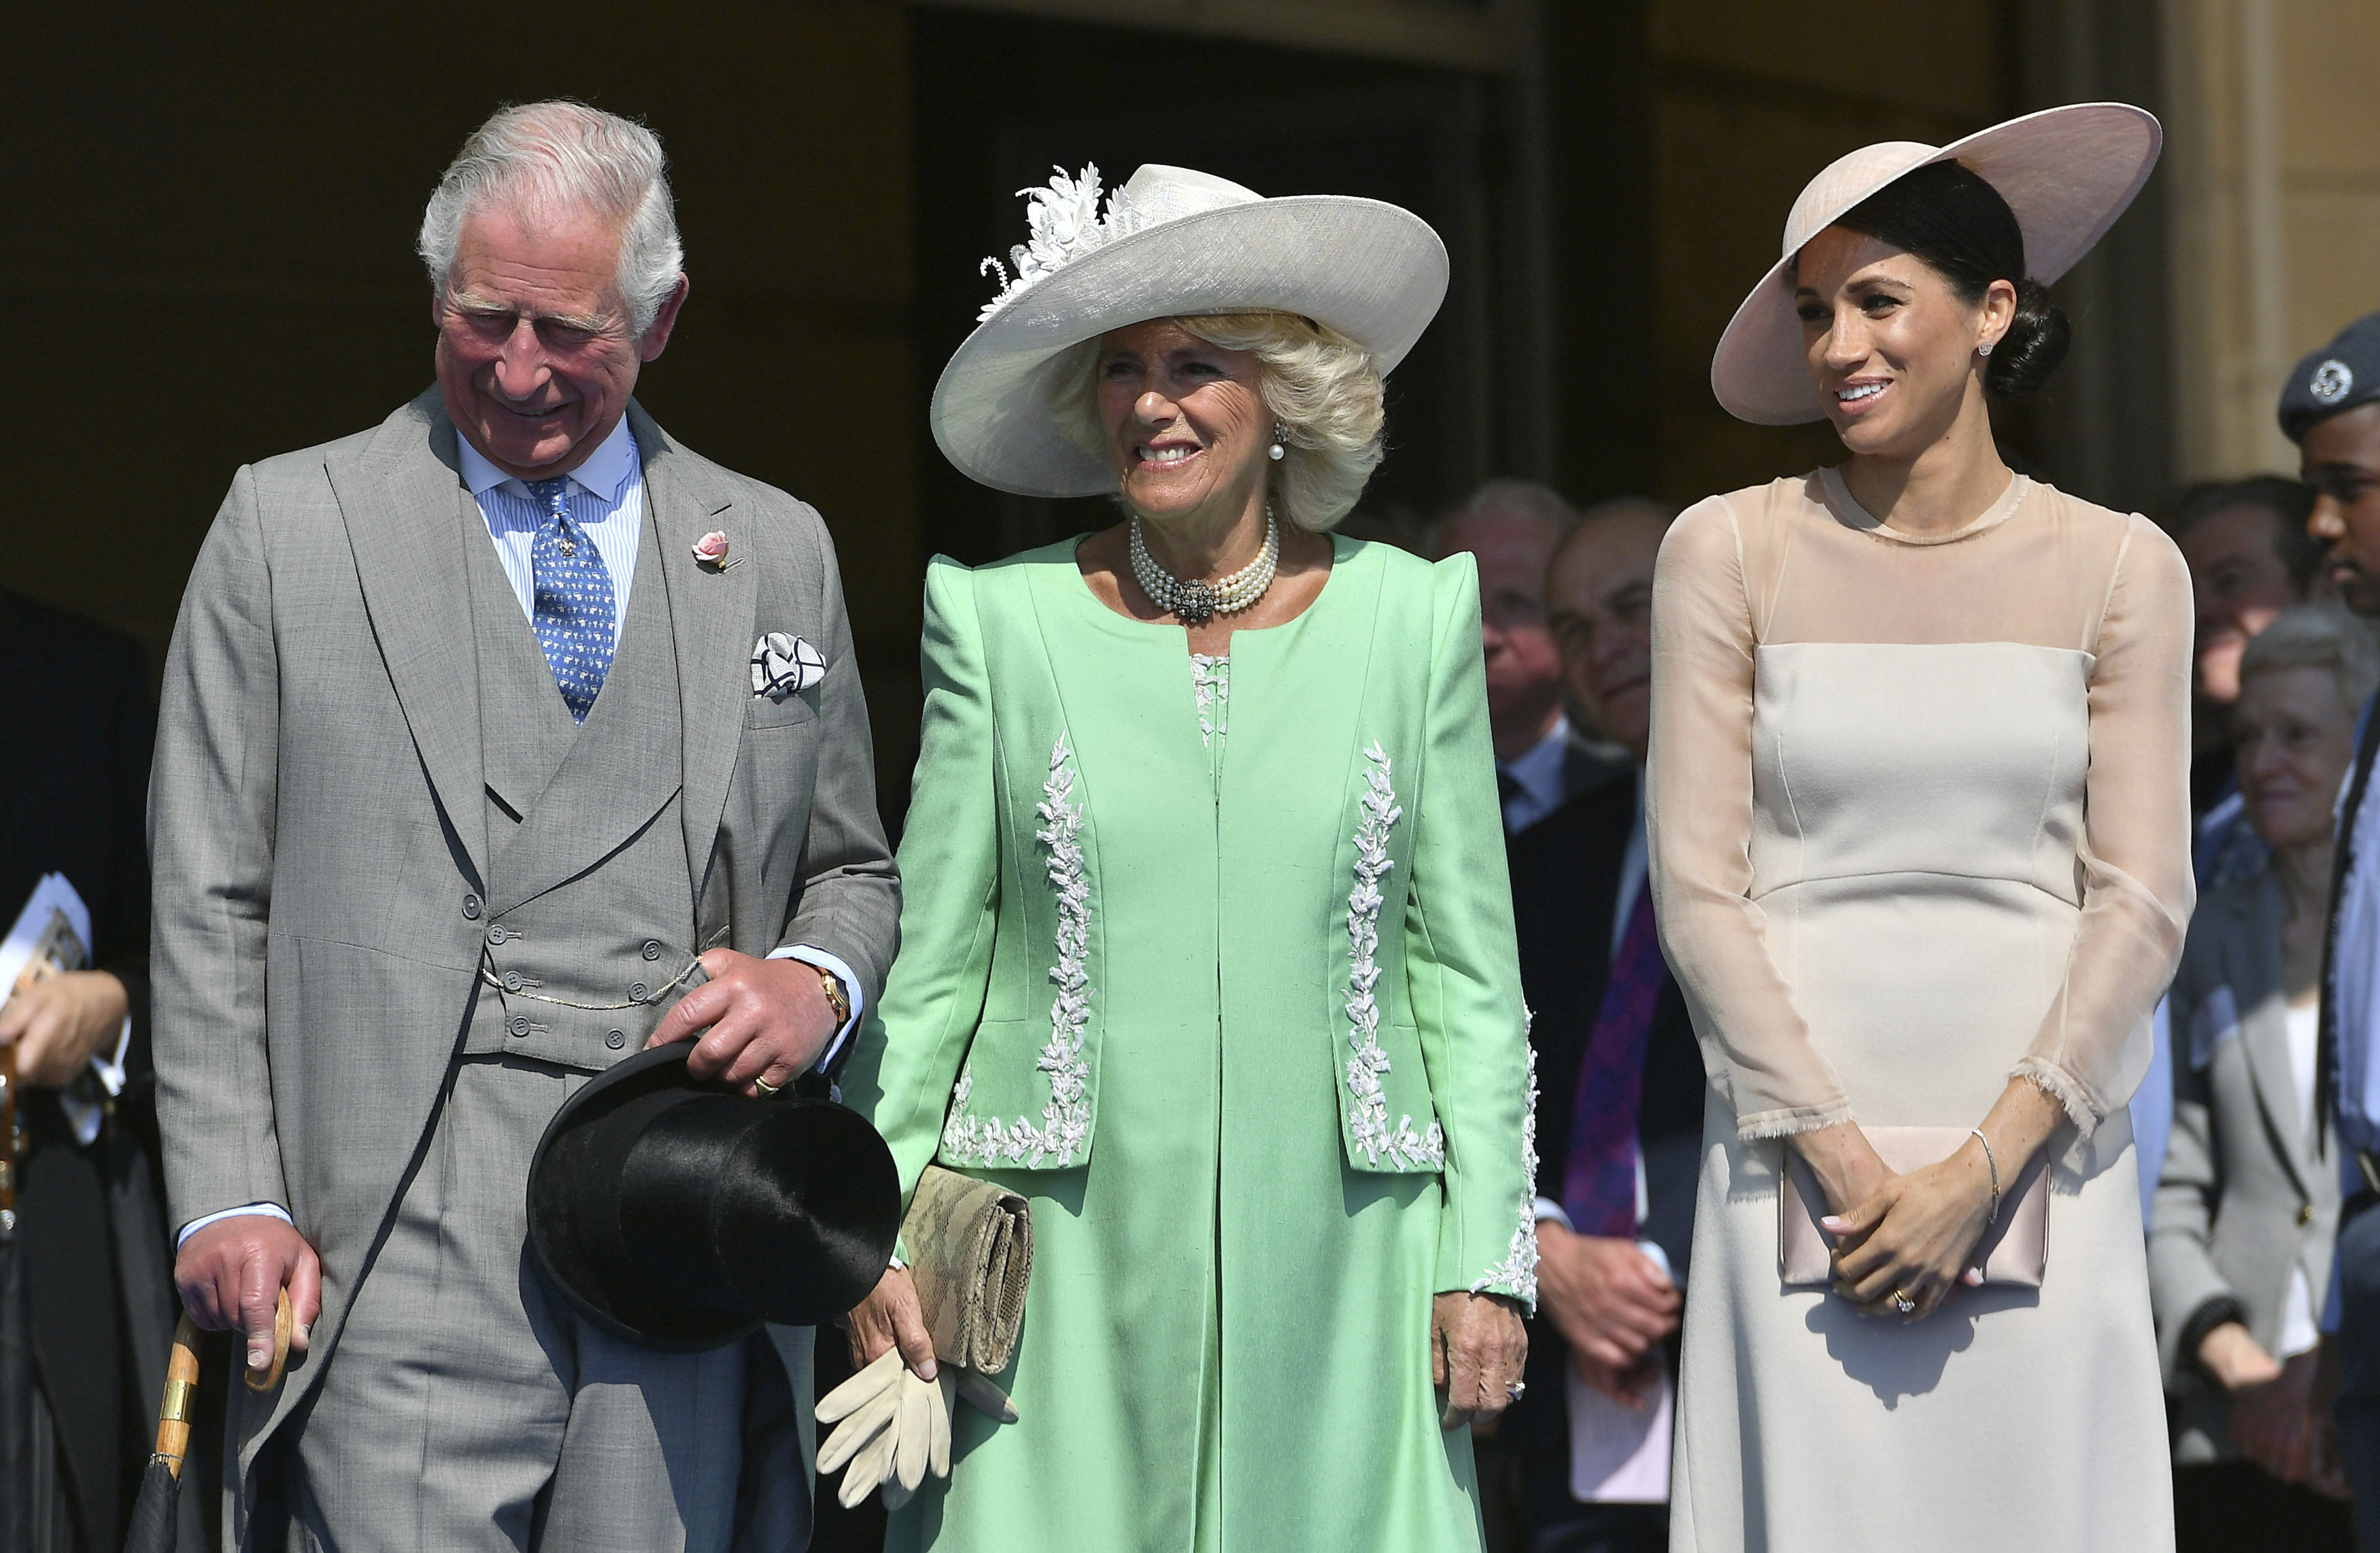 <div class='meta'><div class='origin-logo' data-origin='none'></div><span class='caption-text' data-credit='Dominic Lipinski/Pool Photo via AP'>From left, Britain's Prince Charles, Camilla, the Duchess of Cornwall, and Meghan, the Duchess of Sussex attend a garden party at Buckingham Palace in London, Tuesday May 22, 2018.</span></div>